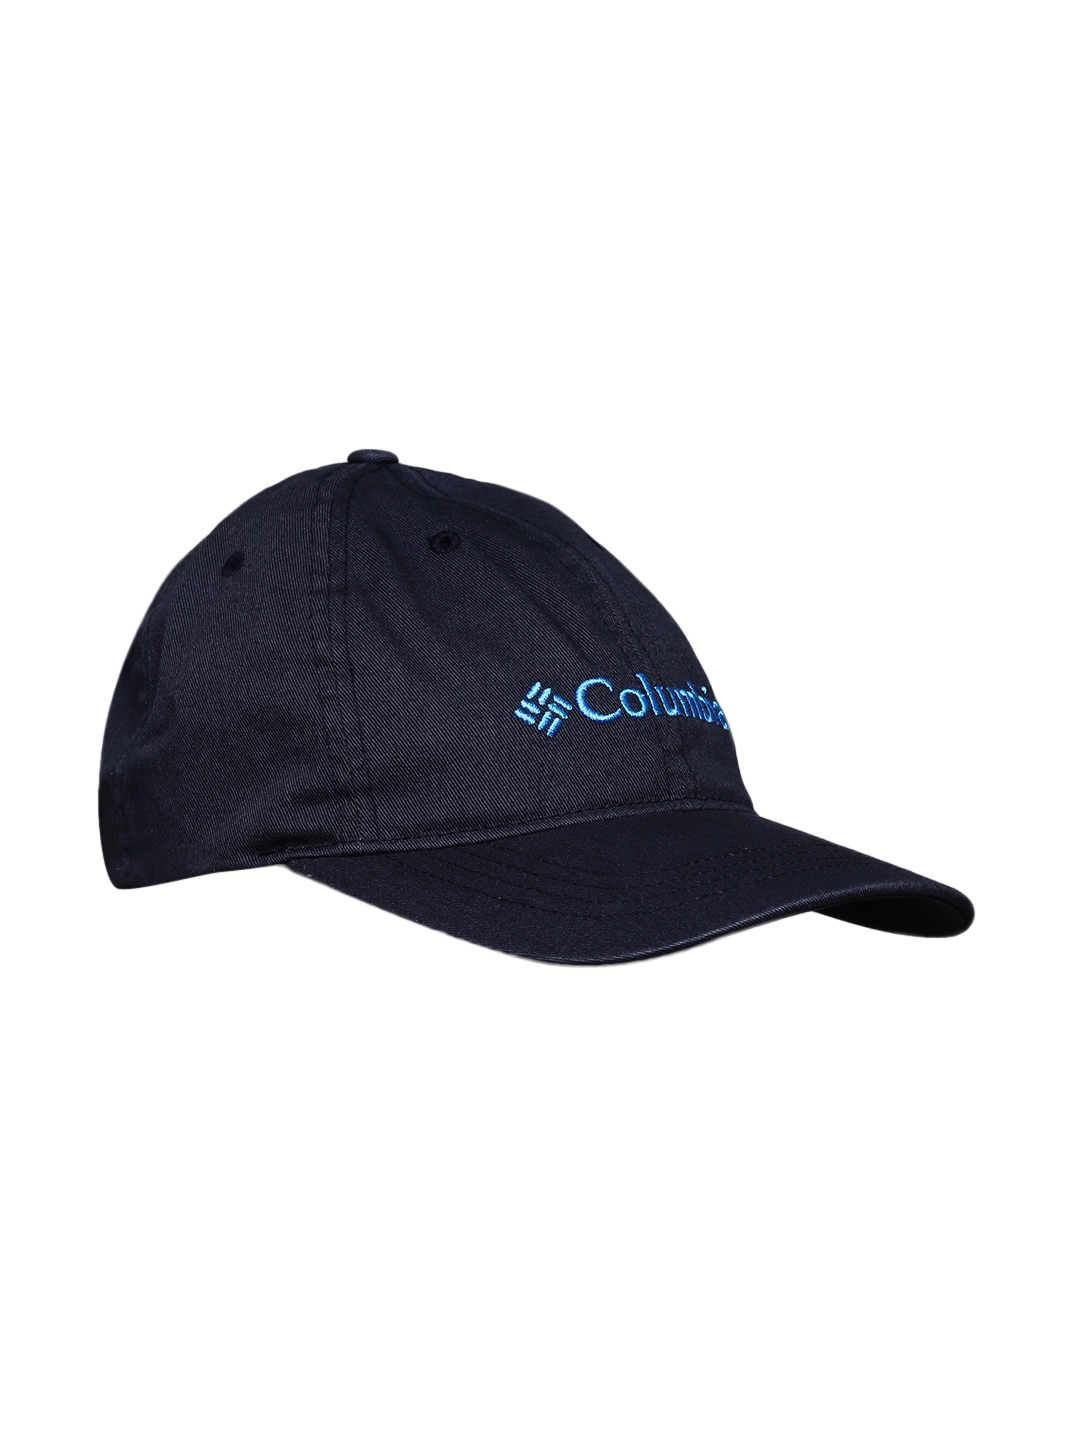 35786e2b3a1 Buy Columbia Navy Blue ROC Logo Ball UV Protect Outdoor Hiking Cap ...